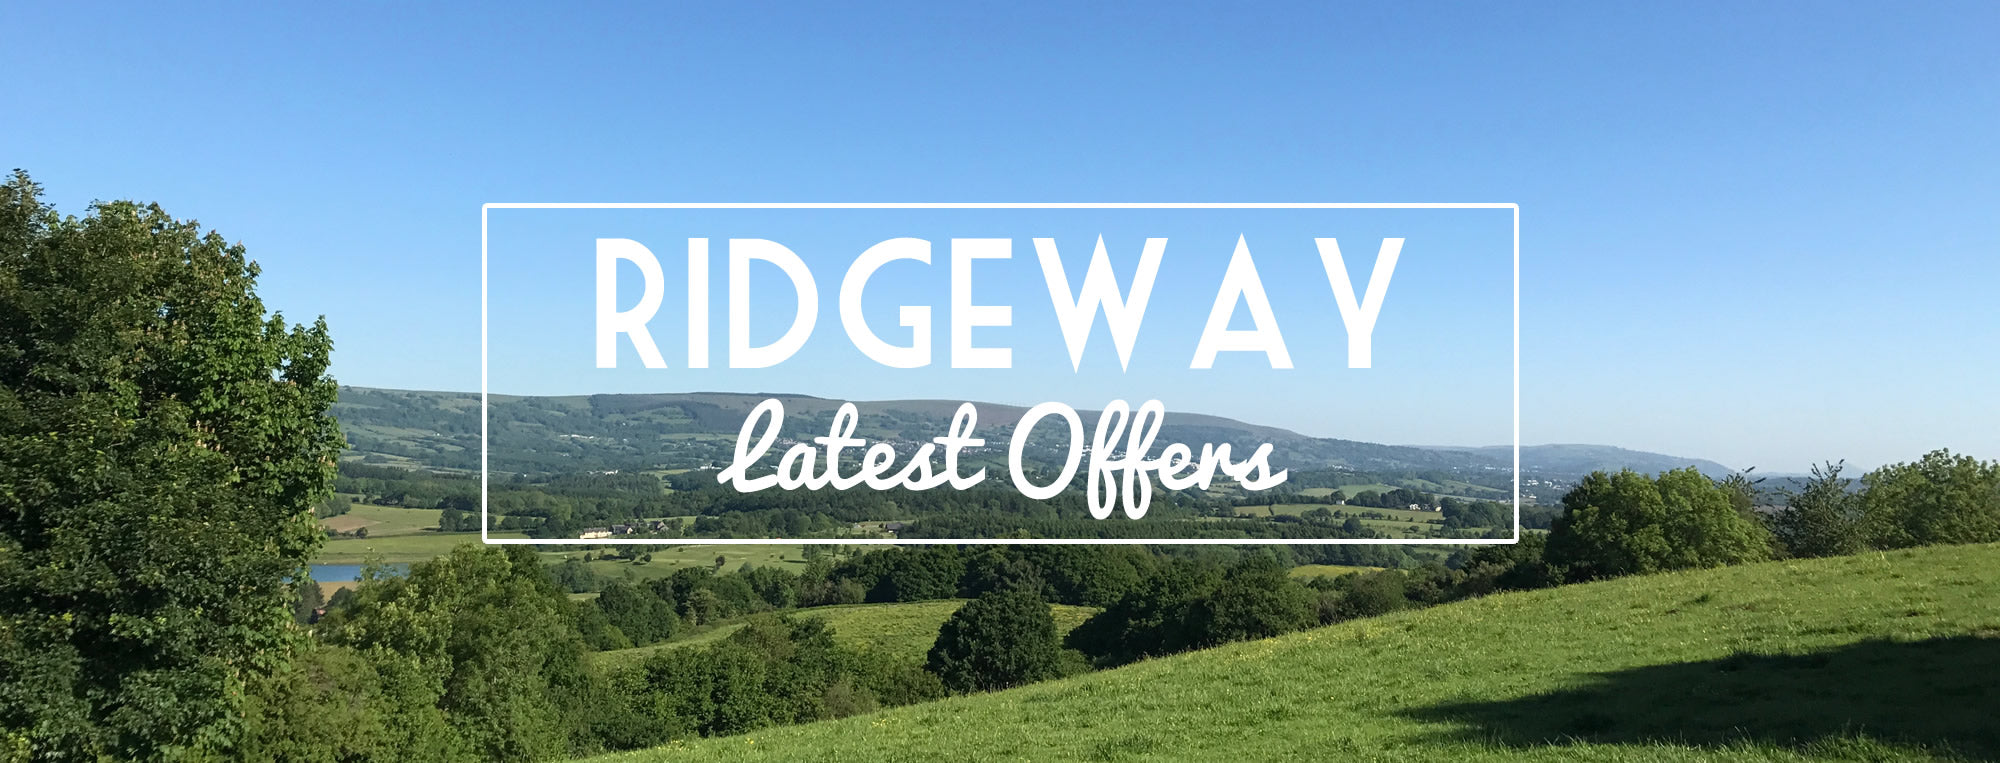 Latest Special Offers at The Ridgeway